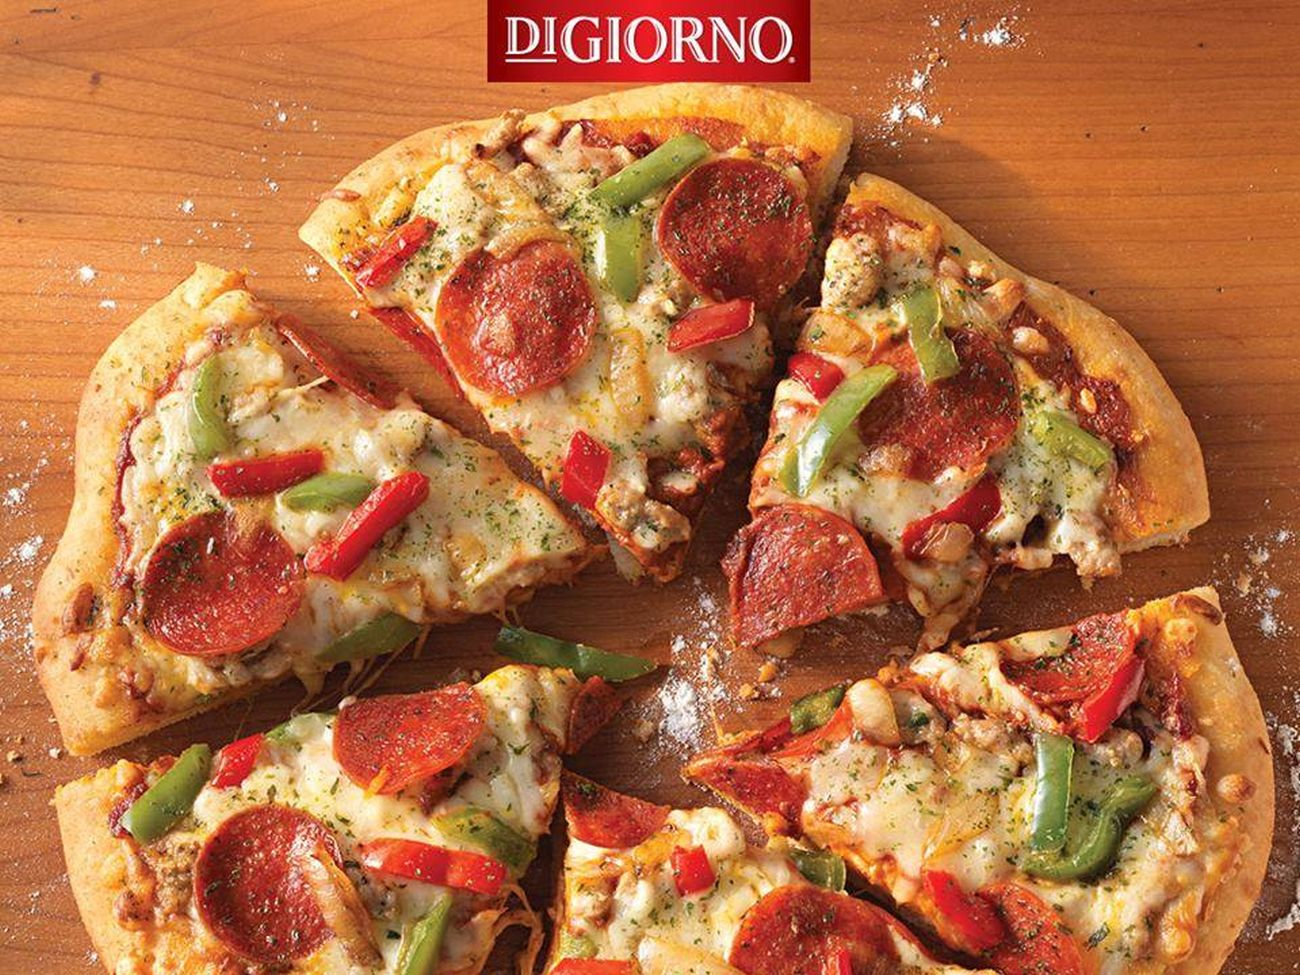 nestle co s refrigerated foods division market Estimation of demand (trial and repeat volume) – (answer for question 1) sales of a refrigerated pizza product line5 million us households and could damage to the brand if it is a product perceived as a low quality one nestle should bring the pizza kit concept to market and position it as a high .